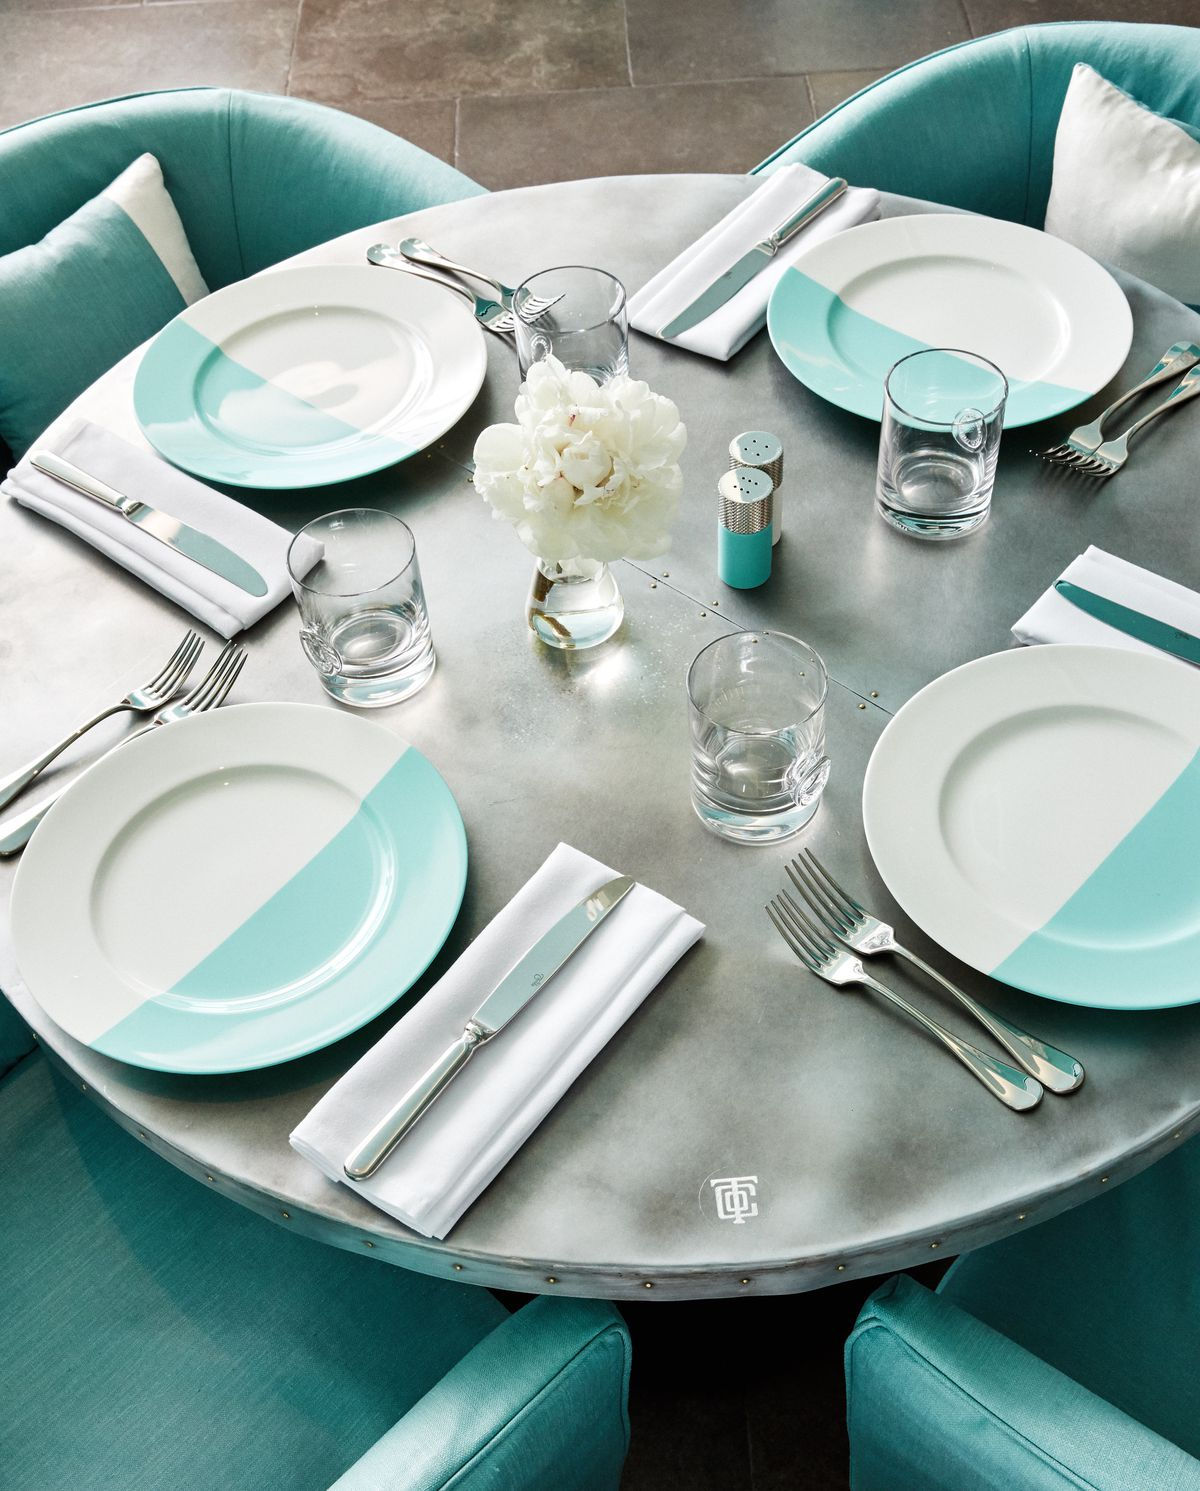 A table setting at the Tiffany & Co. Fifth Avenue cafe